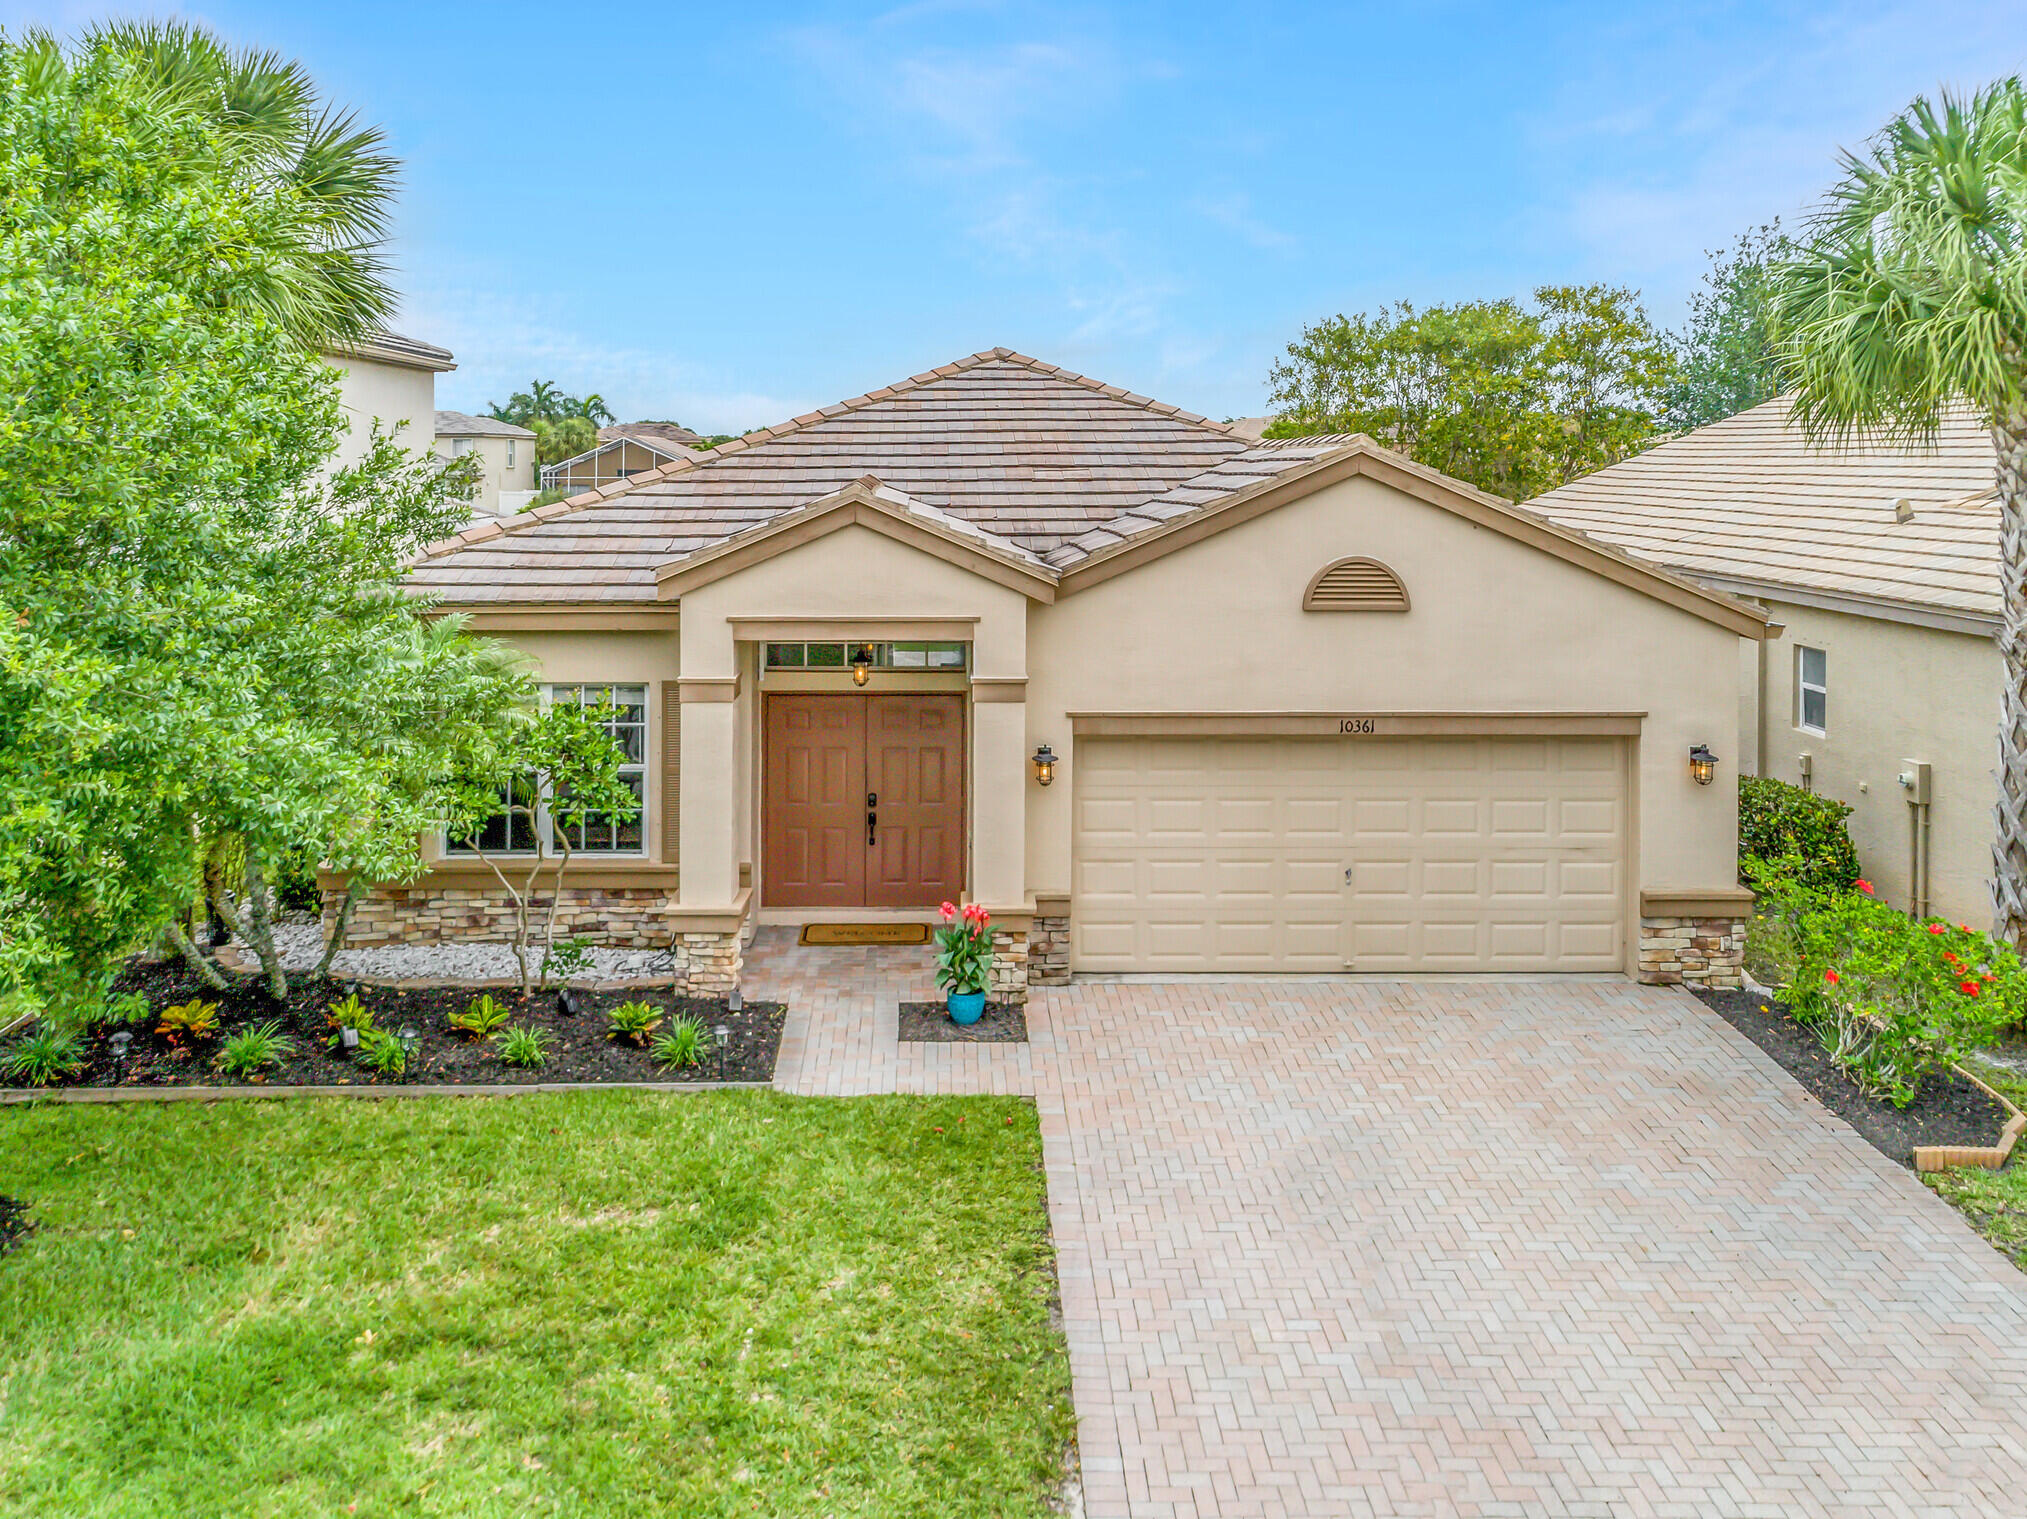 Home for sale in Thoroughbred Lakes Lake Worth Florida